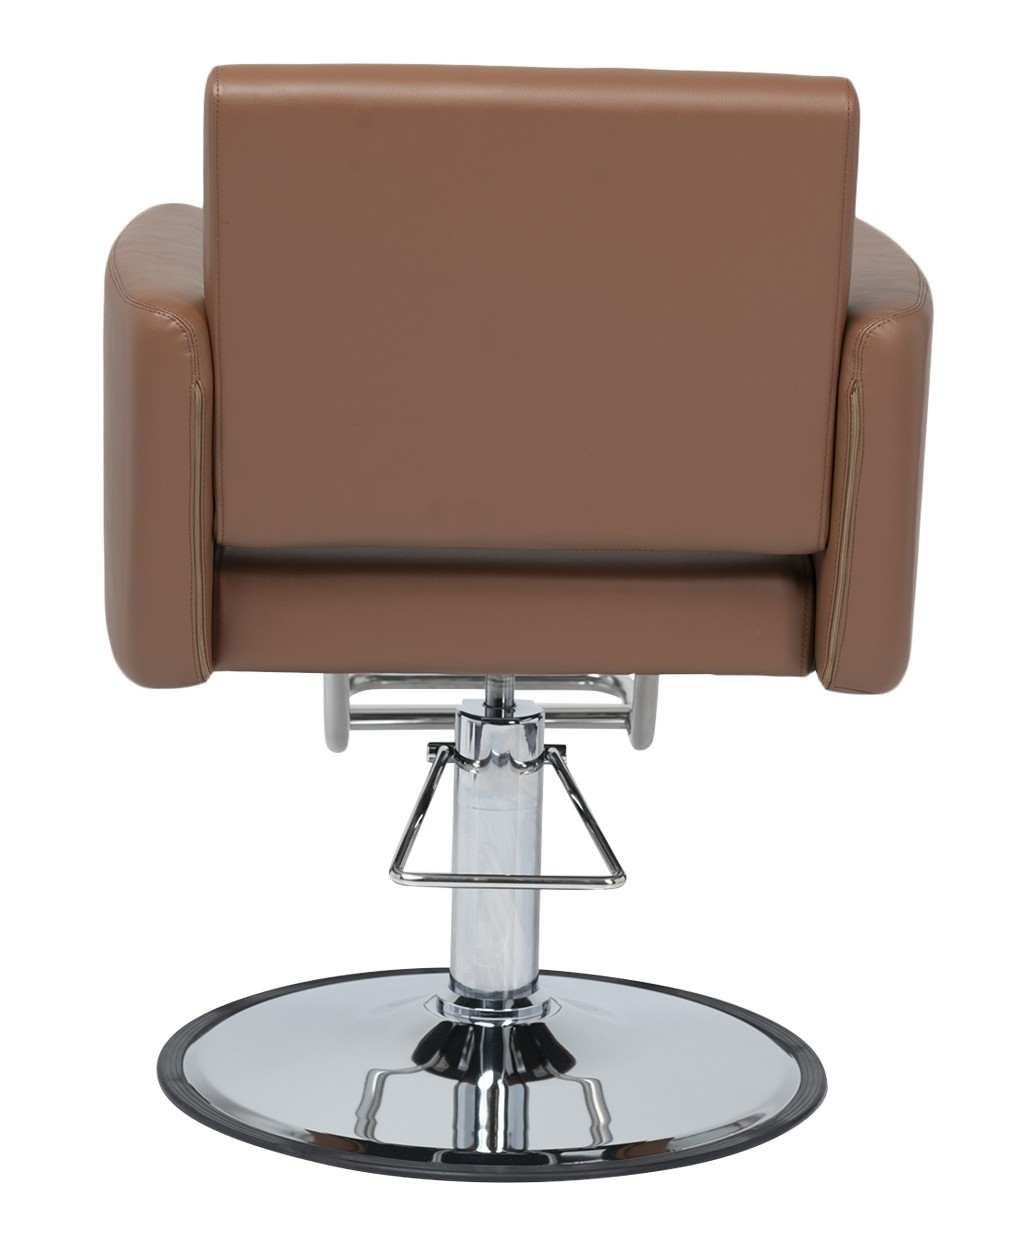 Cammelo Styling Chair